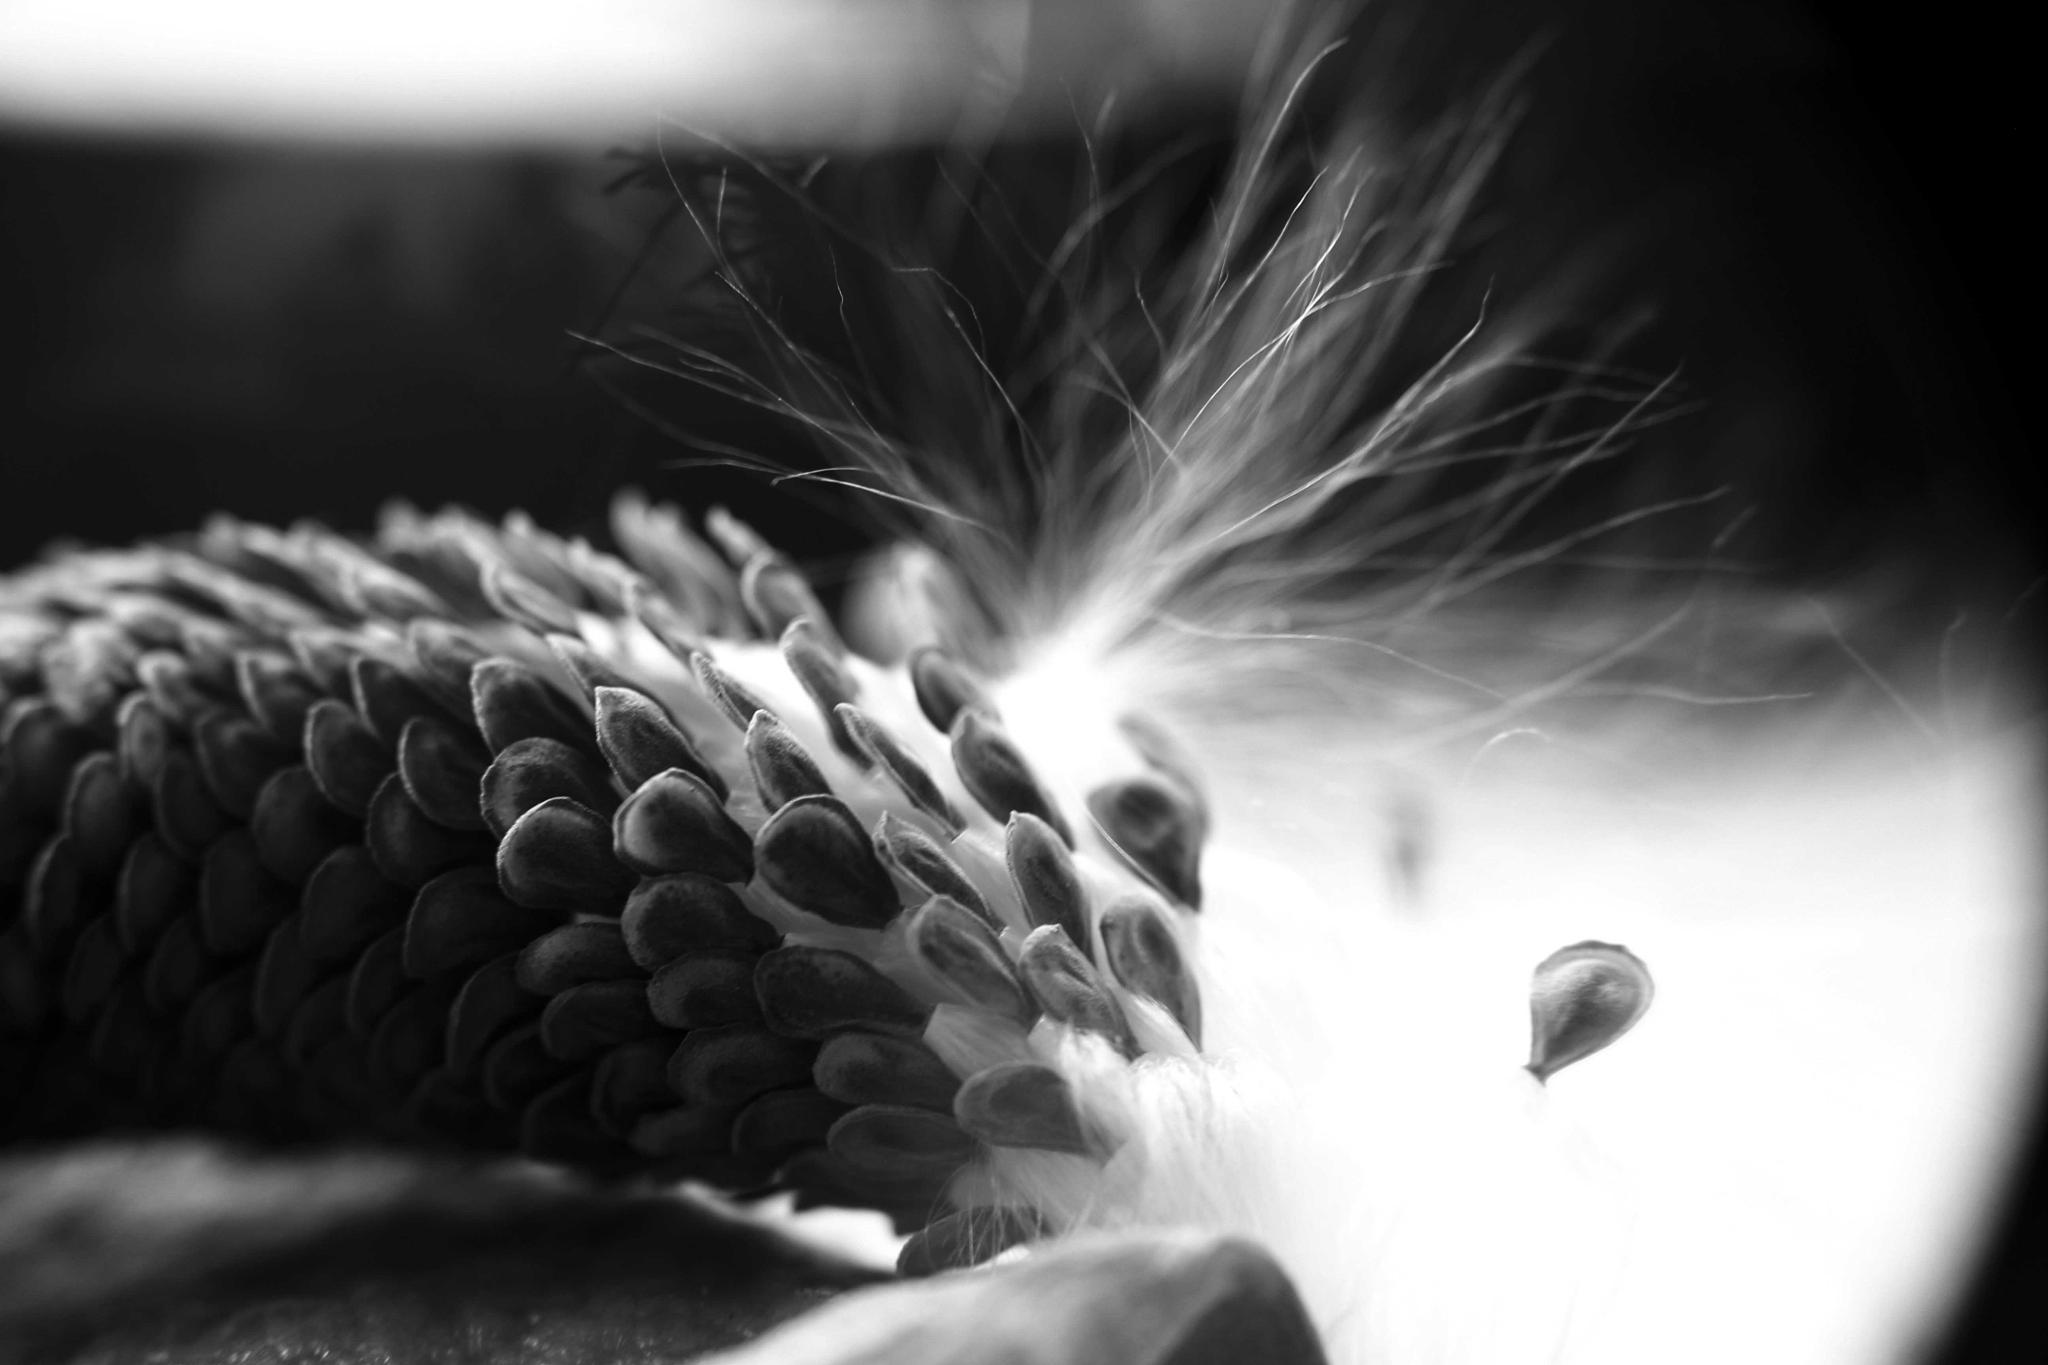 seeds of life by mohanchincholi